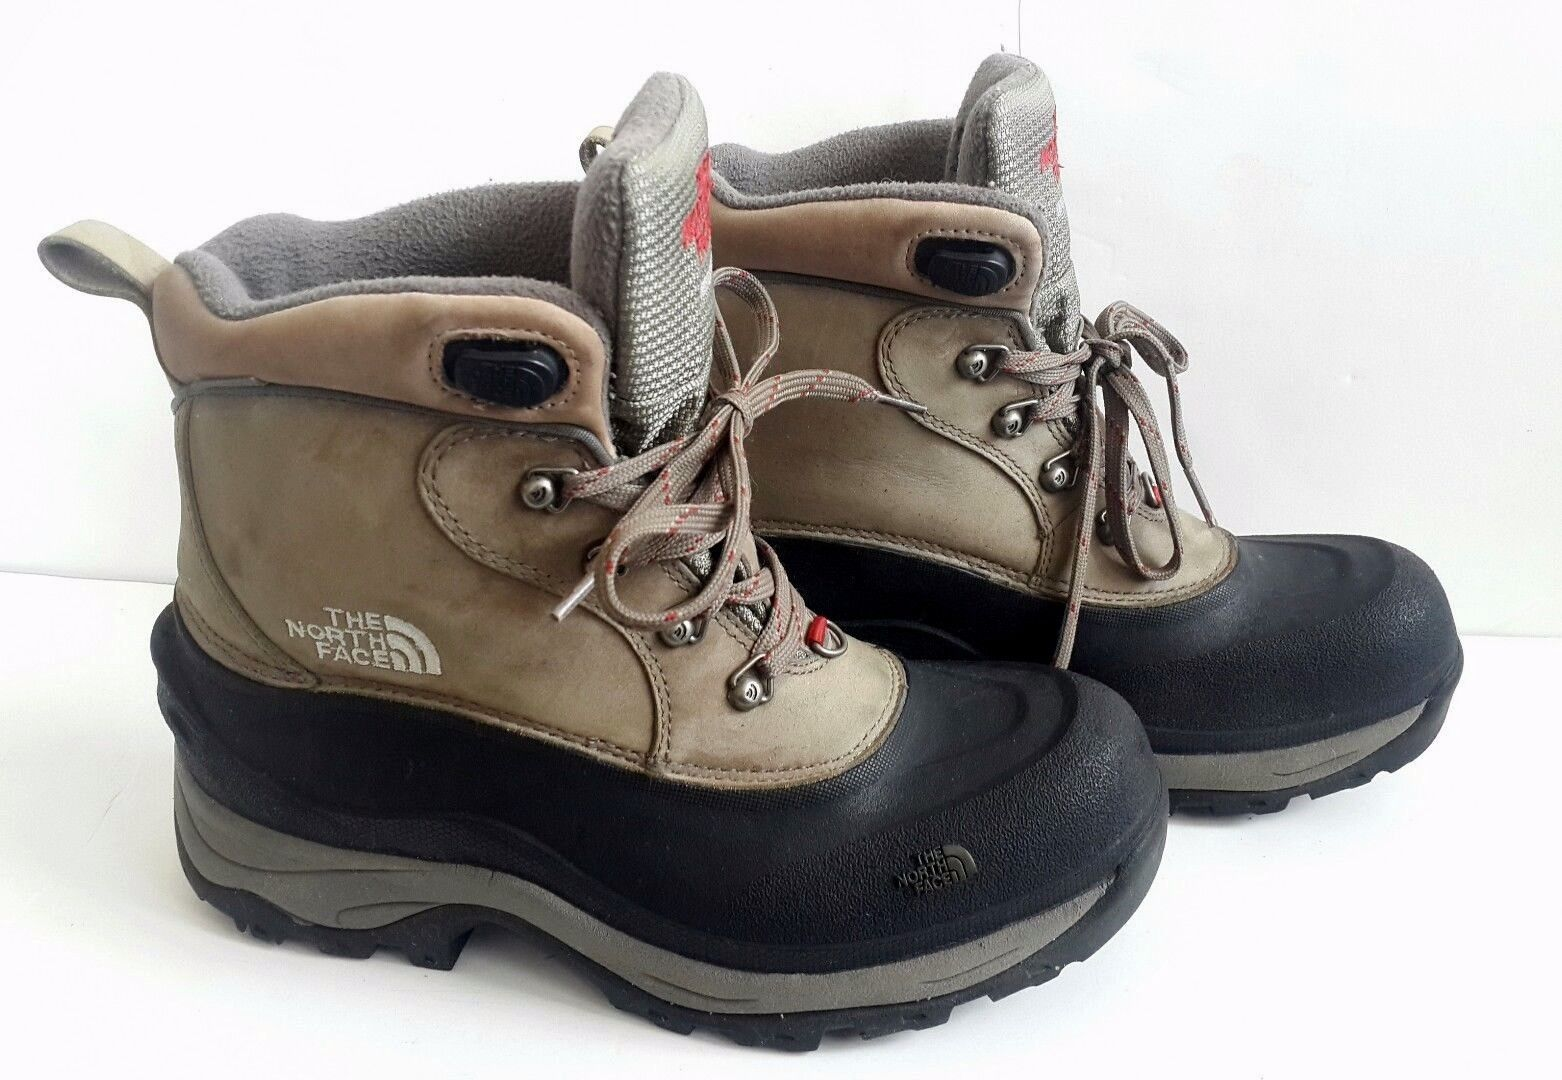 a3946eaeb Details about The North Face Youth Size 2 Winter Snow Boots Black ...